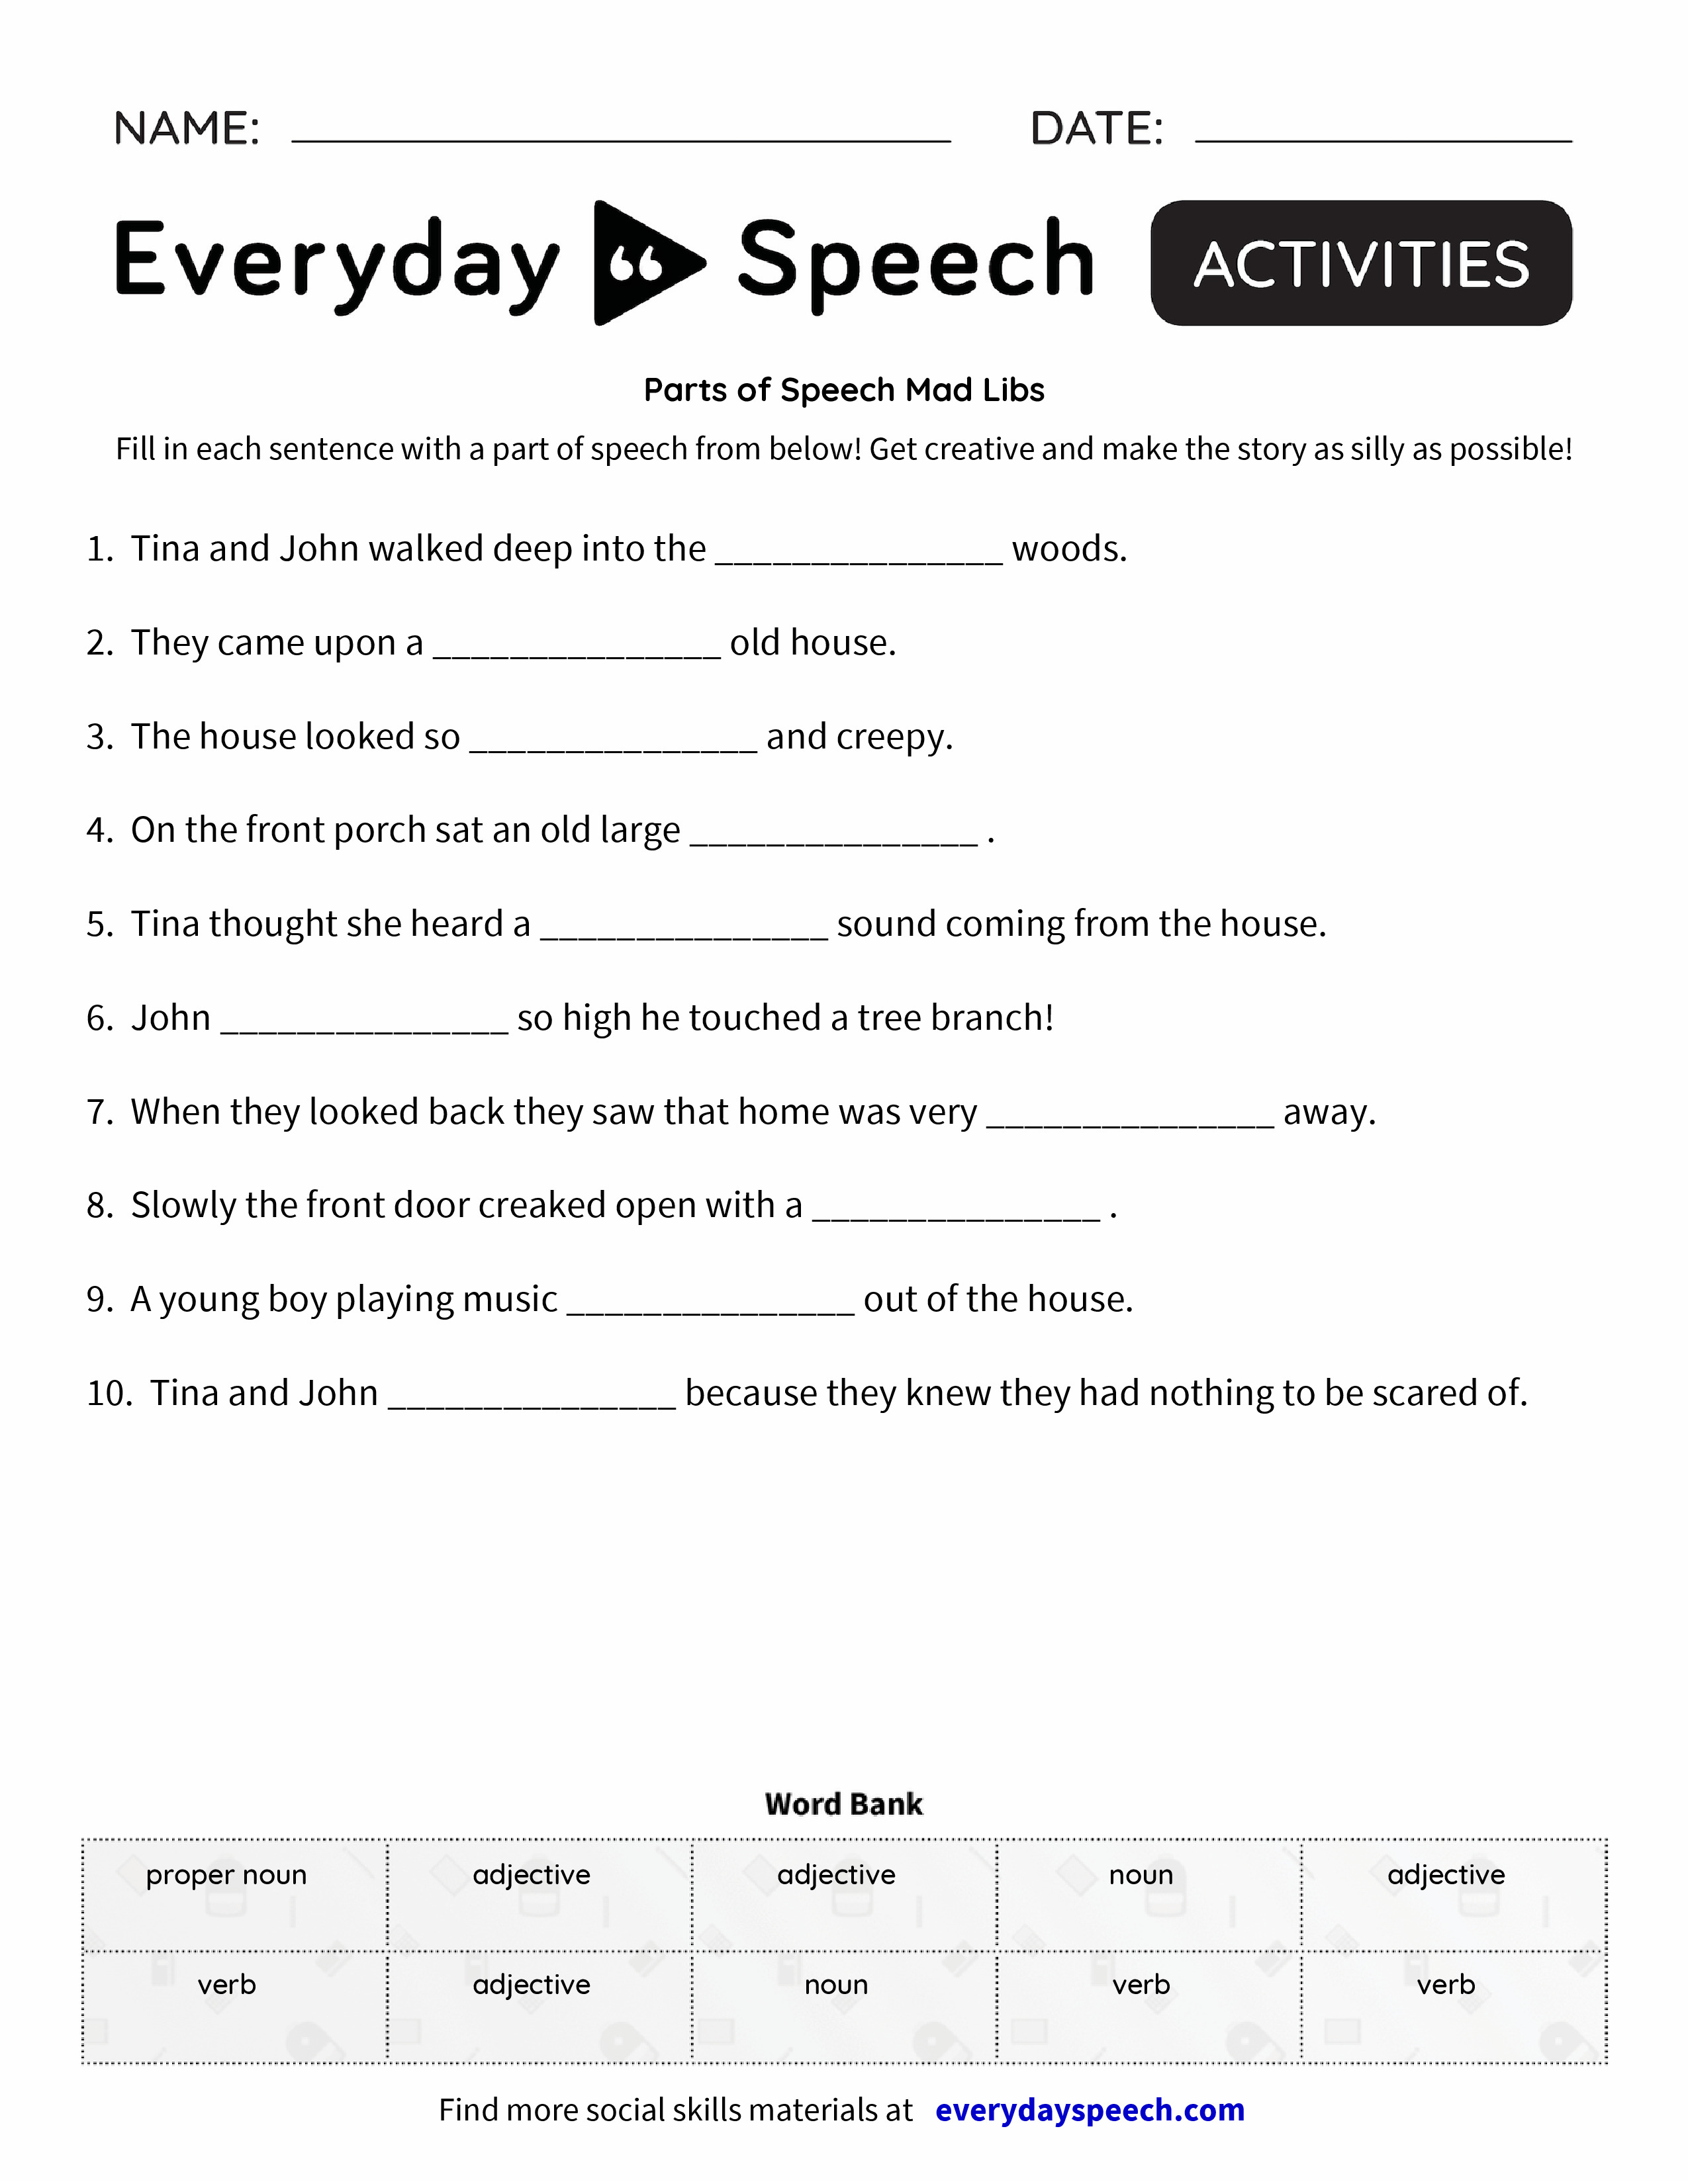 parts of speech mad libs everyday speech. Black Bedroom Furniture Sets. Home Design Ideas